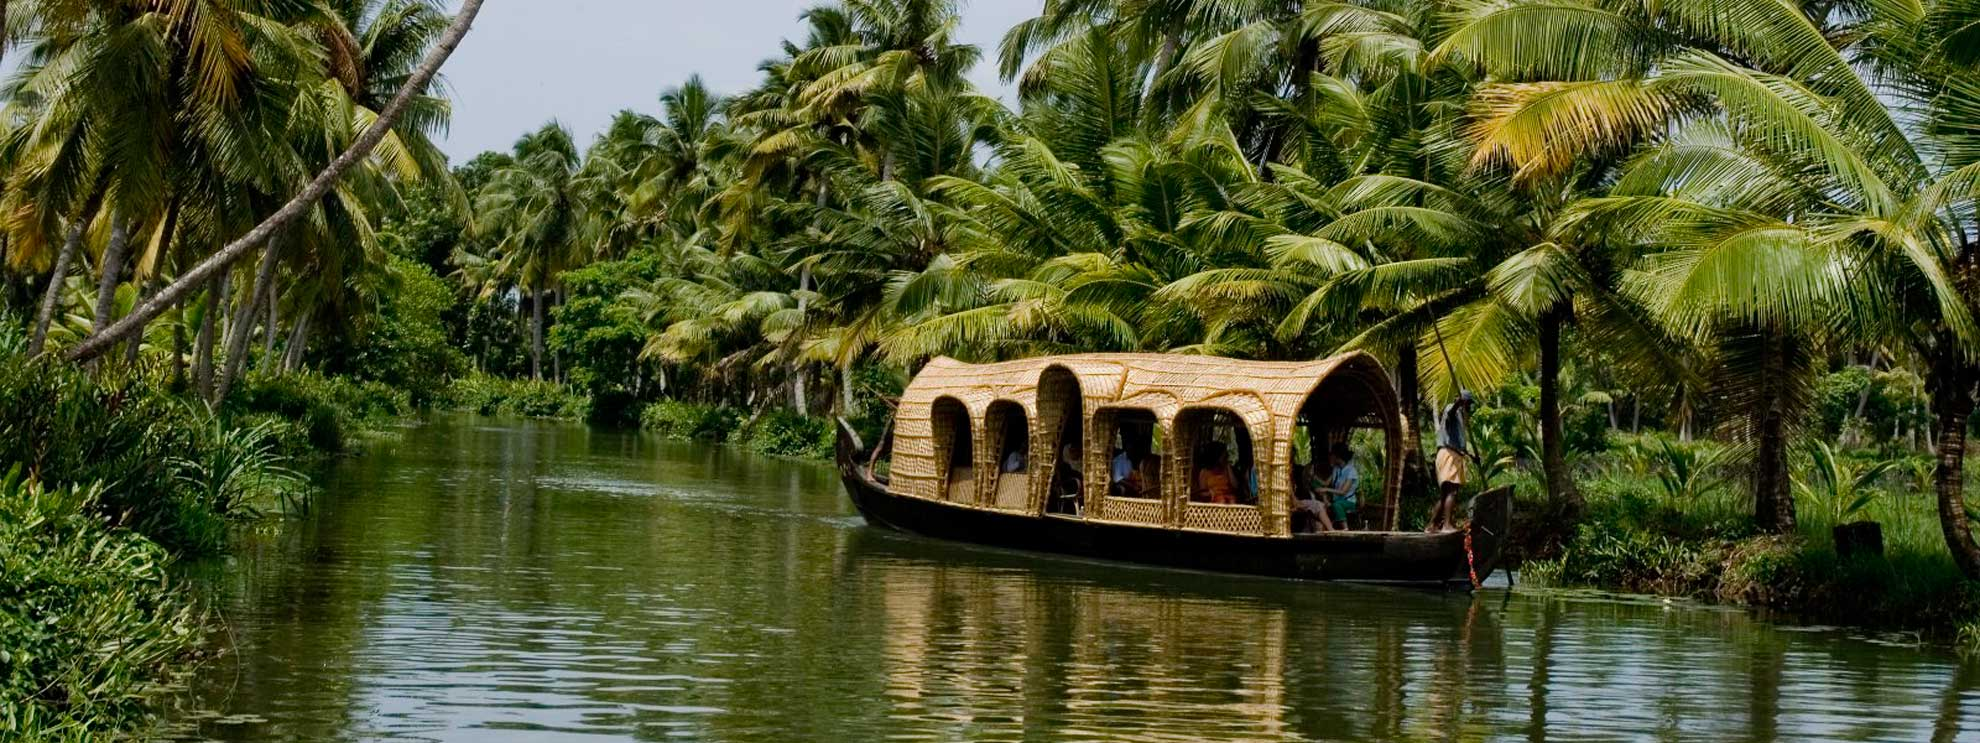 Top 10 places to visit in kerala god s own country Top 10 best vacation places